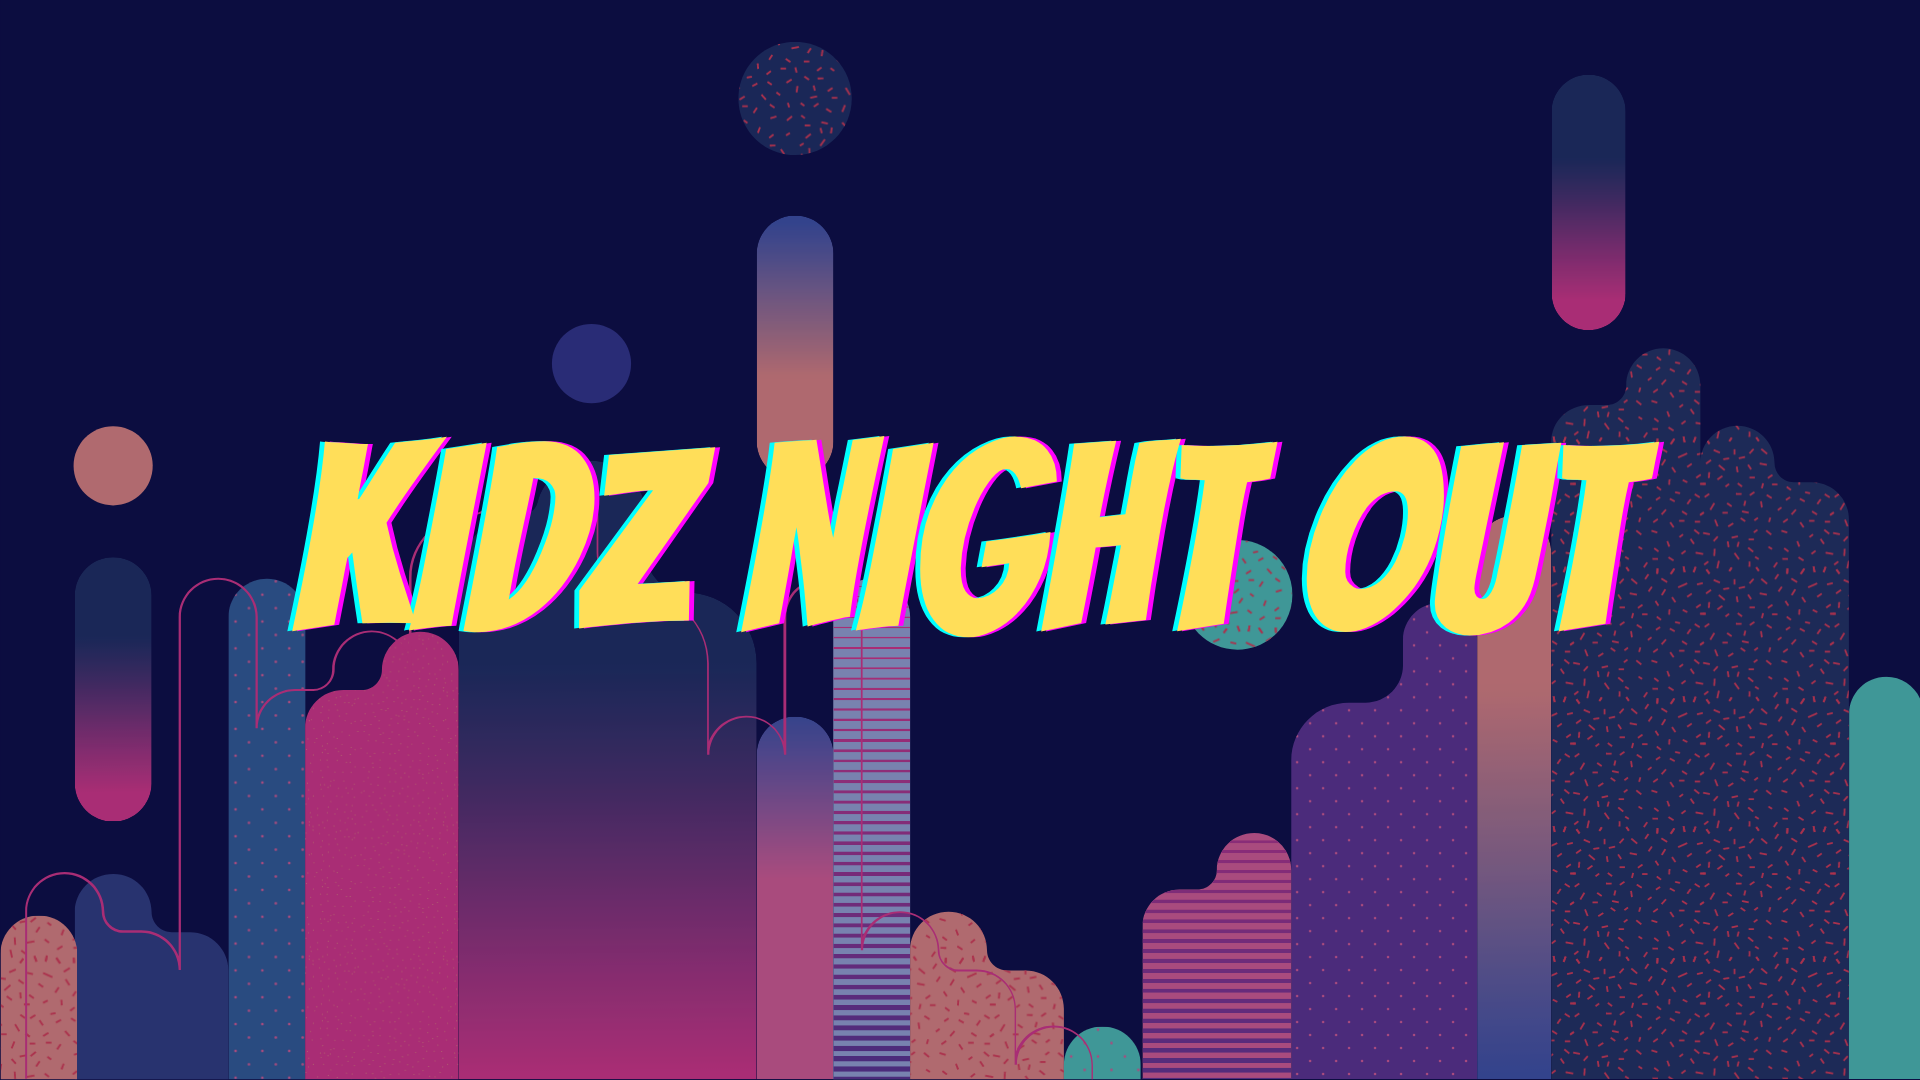 KIDZ NIGHT OUT (1) image